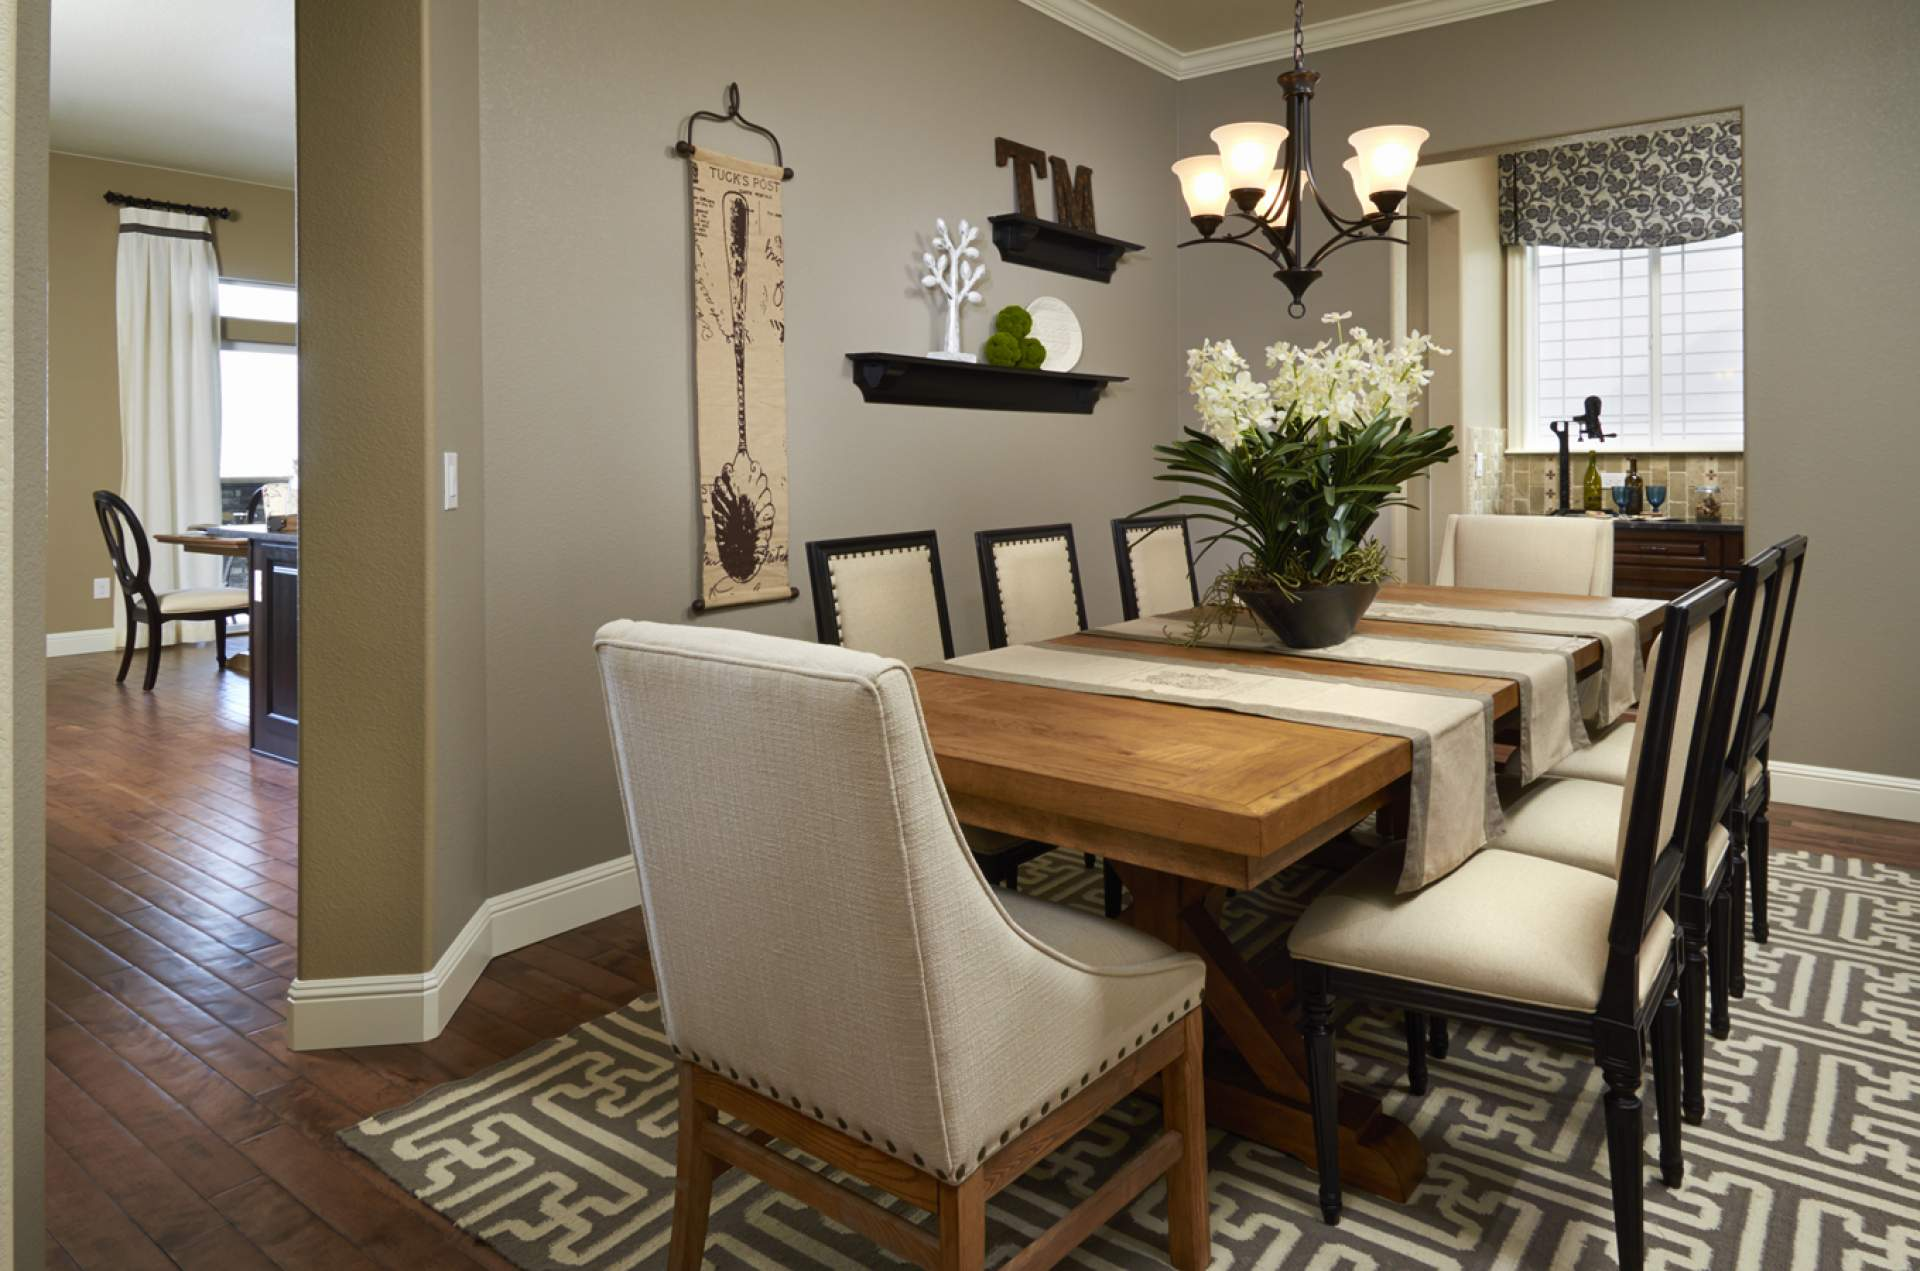 Formal dining room ideas how to choose the best wall Dining room color ideas for a small dining room